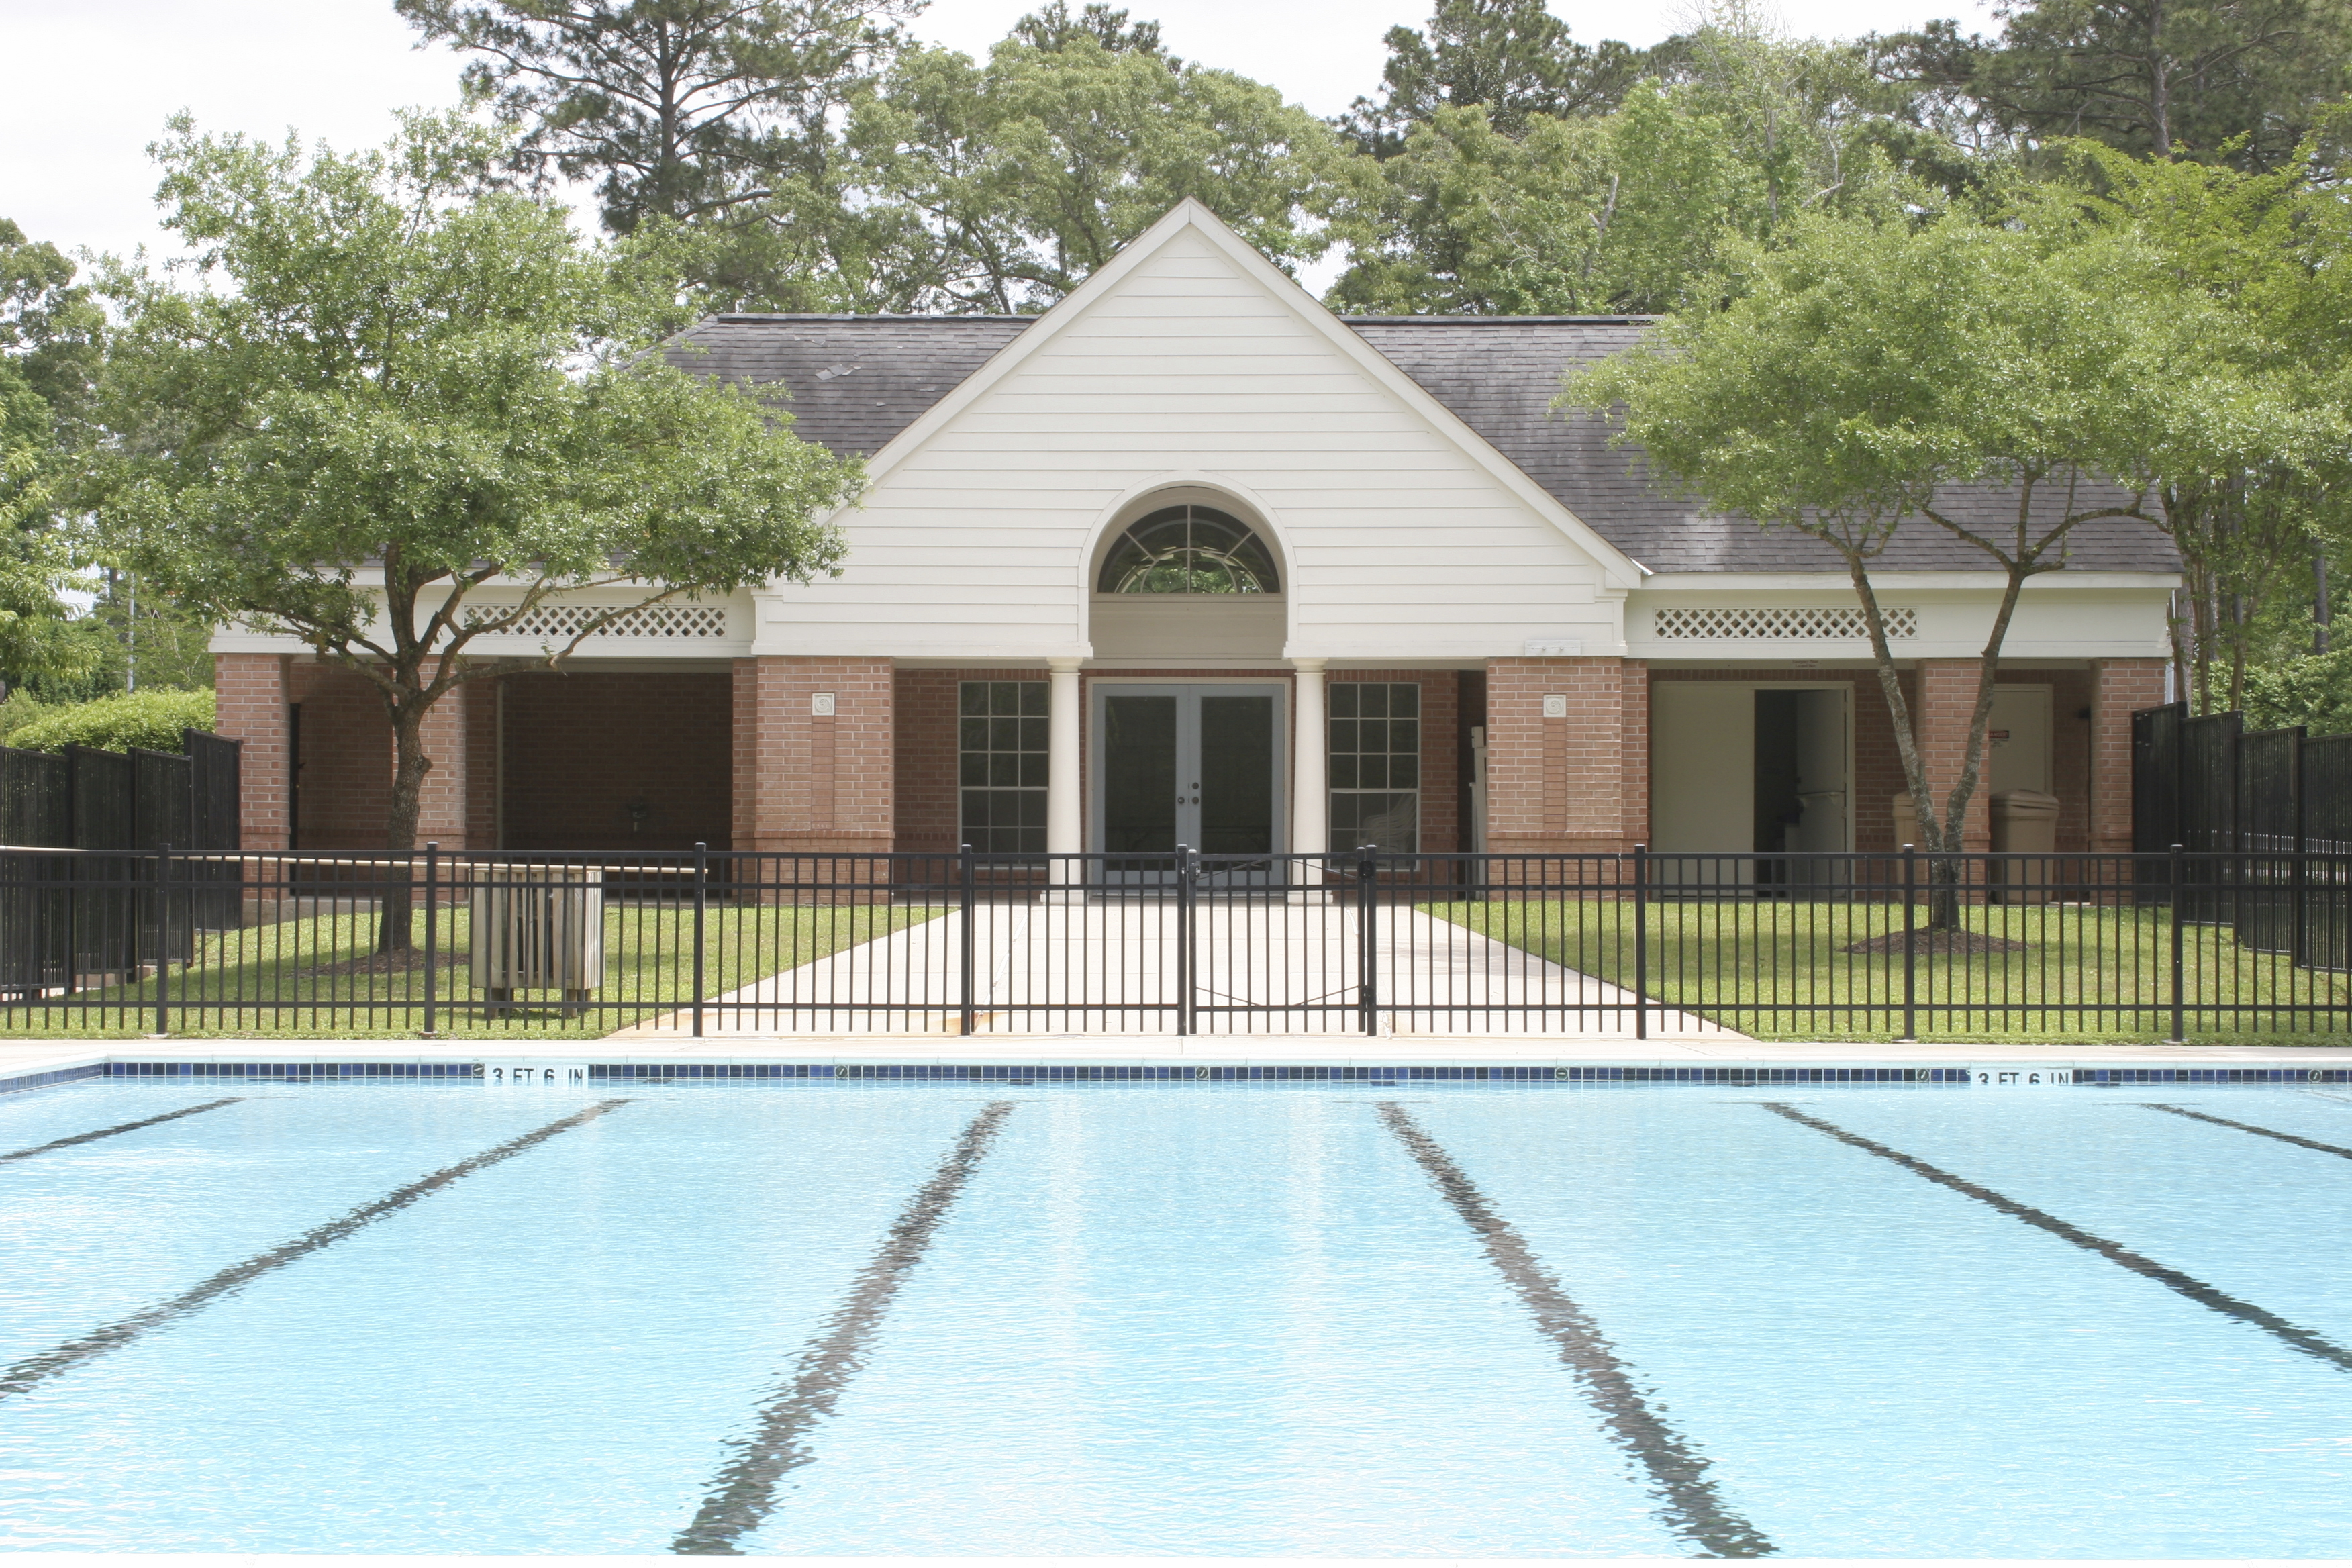 Wi Fi Safety Around Pools Public Buildings Wise Property Solutions